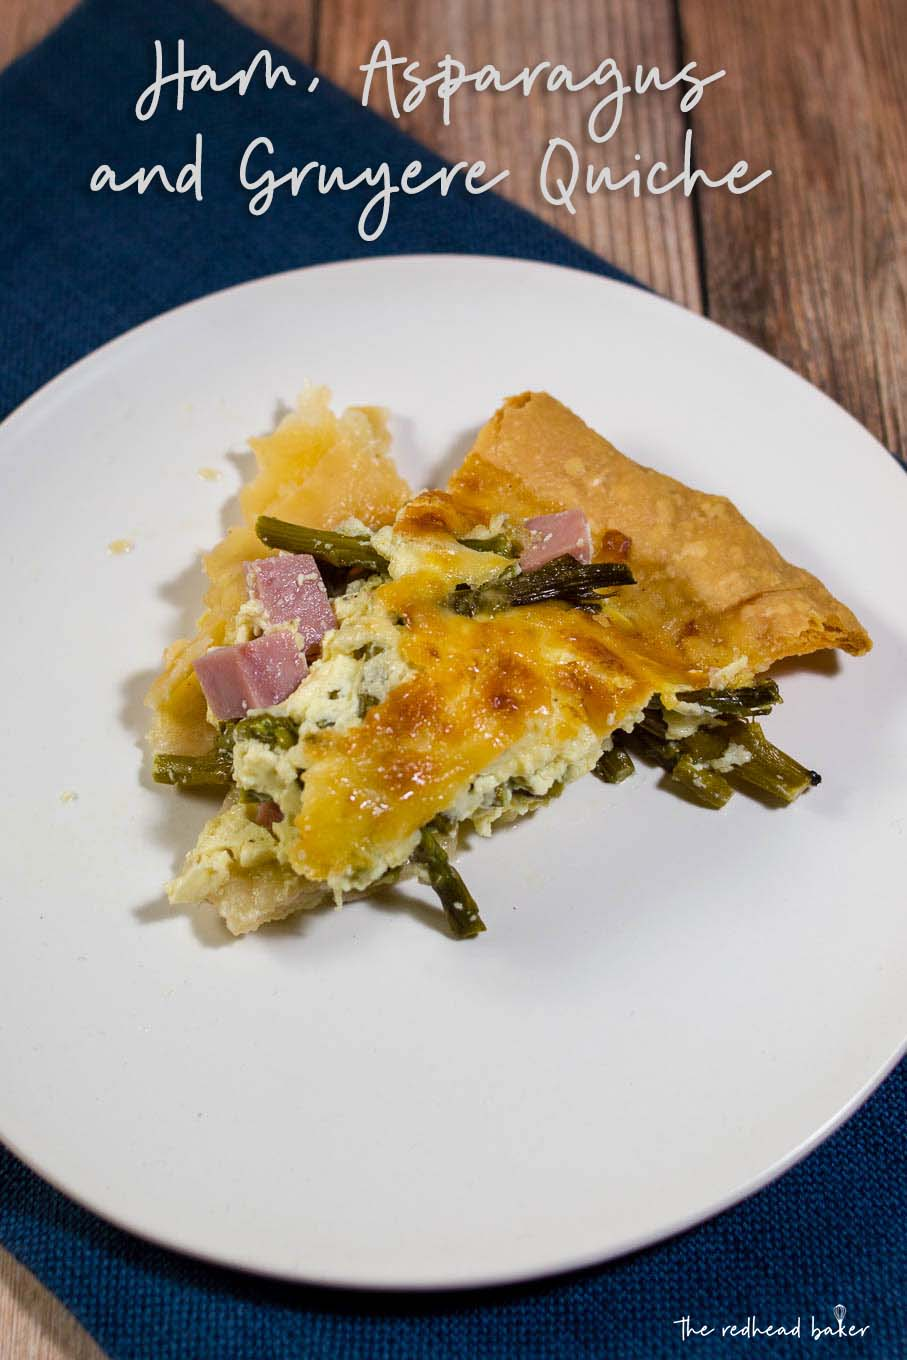 This ham, asparagus and gruyere quiche is ideal for brunch for a crowd: it should be made ahead, can be served at room temperature, and it's delicious!